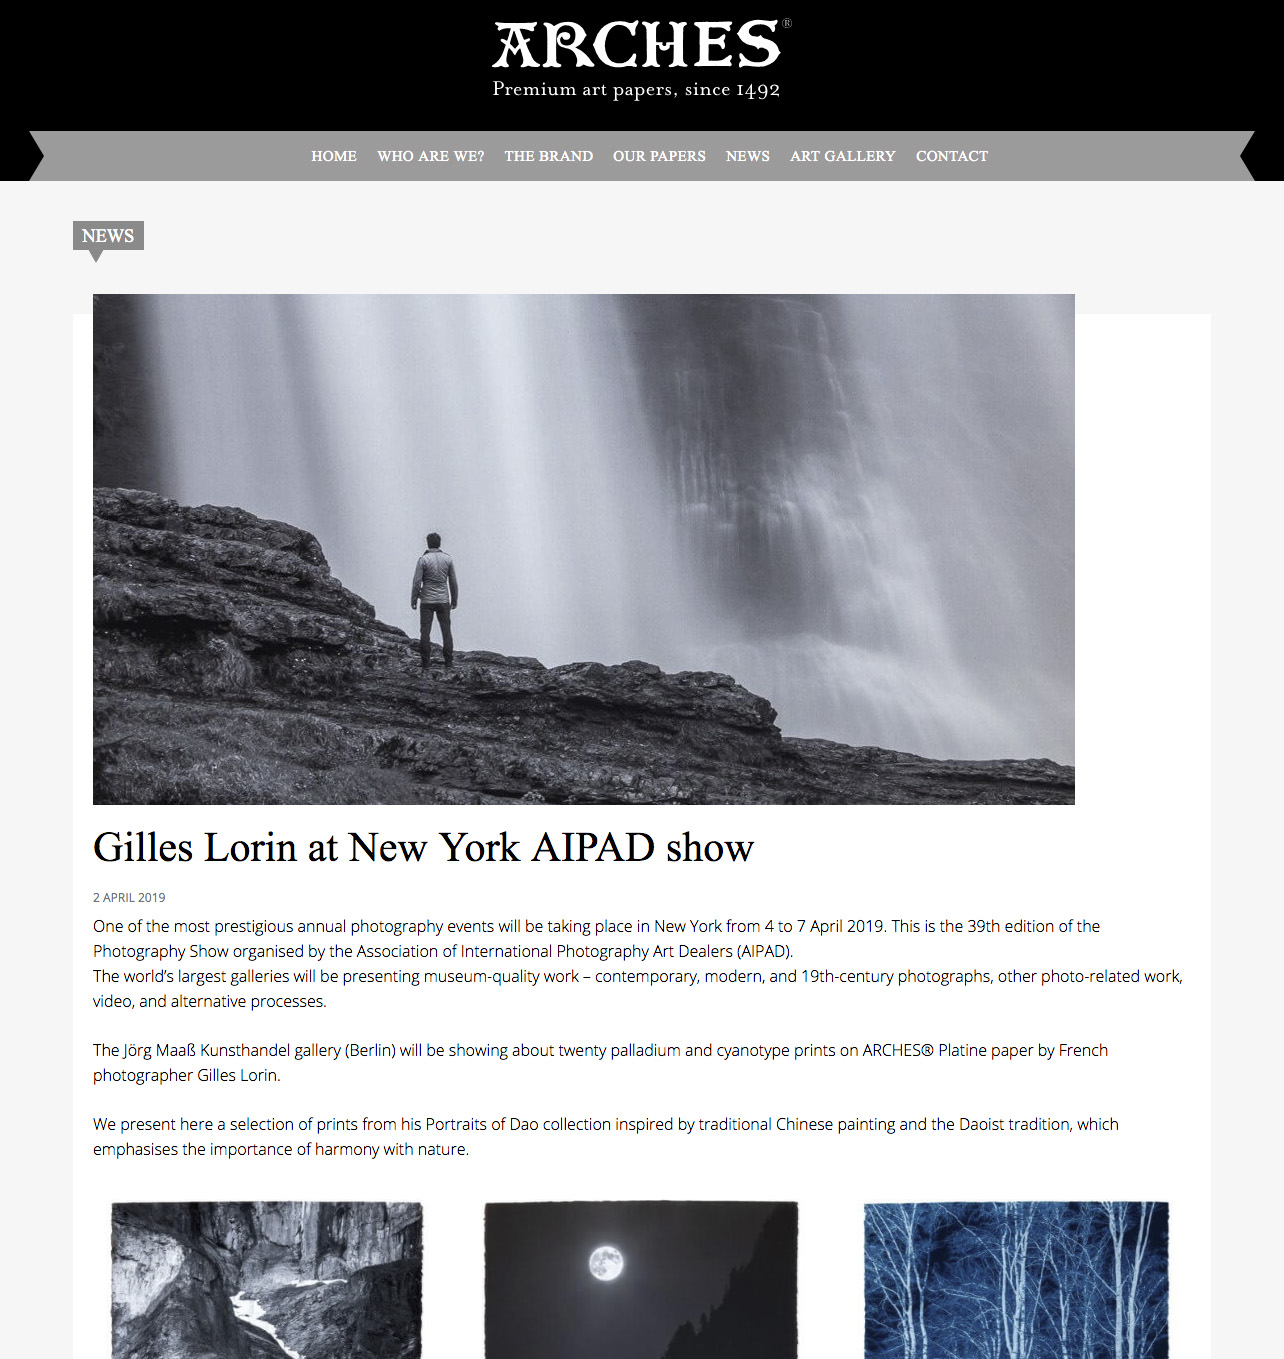 Arches (2019) - Click on the image to read the online article